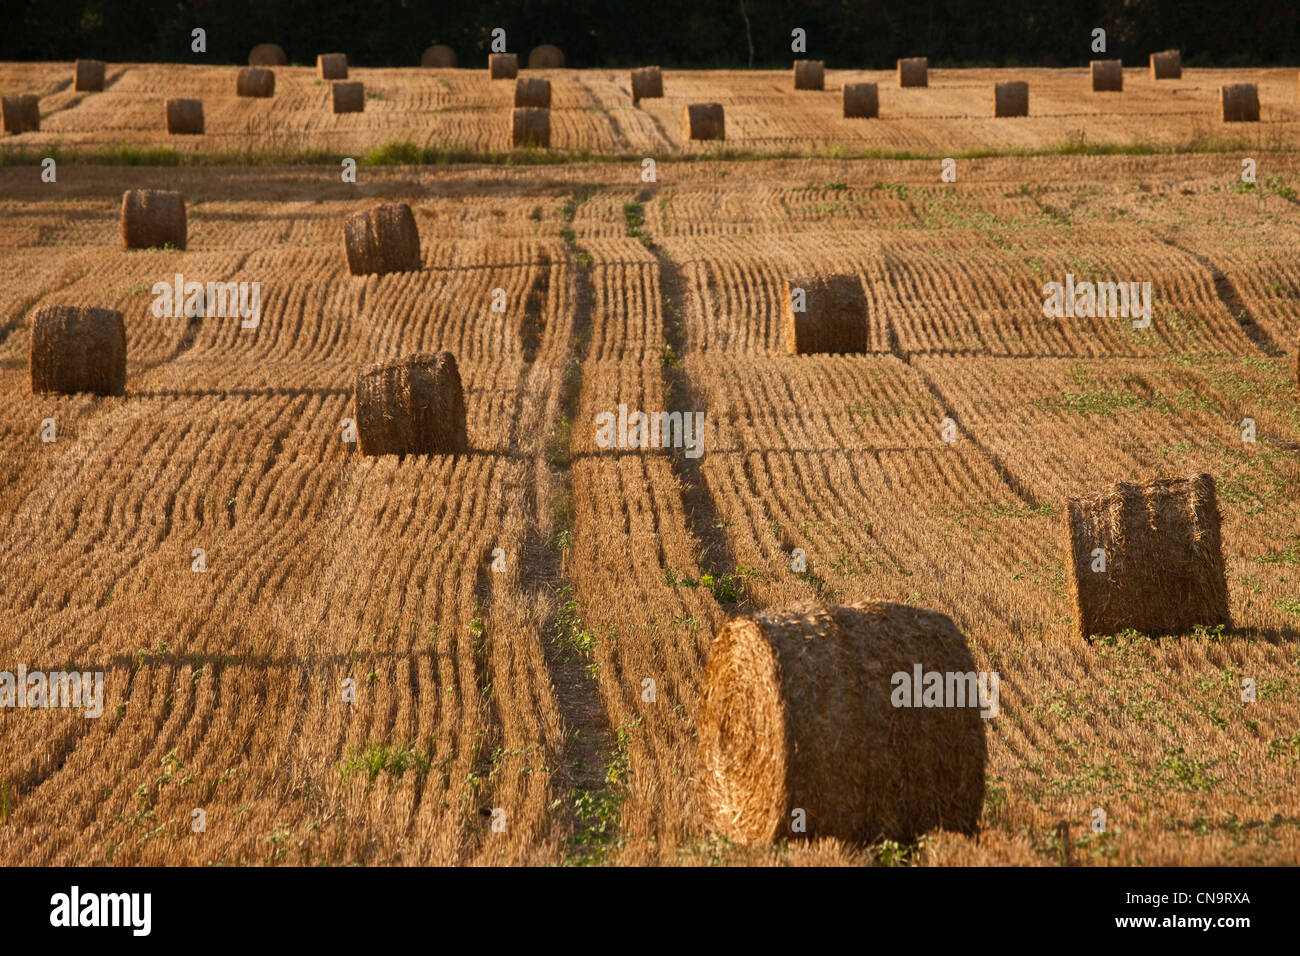 France, Gers, near Condom, Agricultural Landscape, rolls of hay in the field after harvest - Stock Image